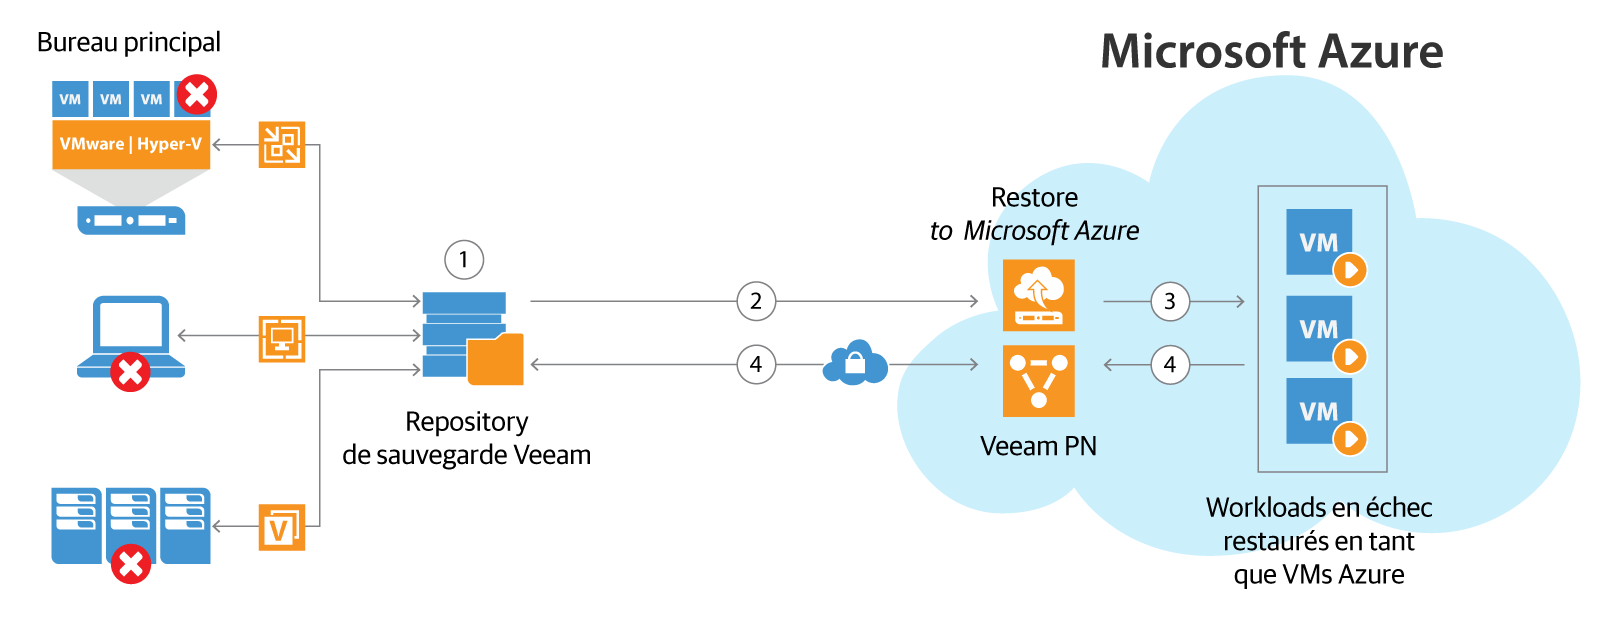 veeam_pn_direct_restore_to_azure_fr.png